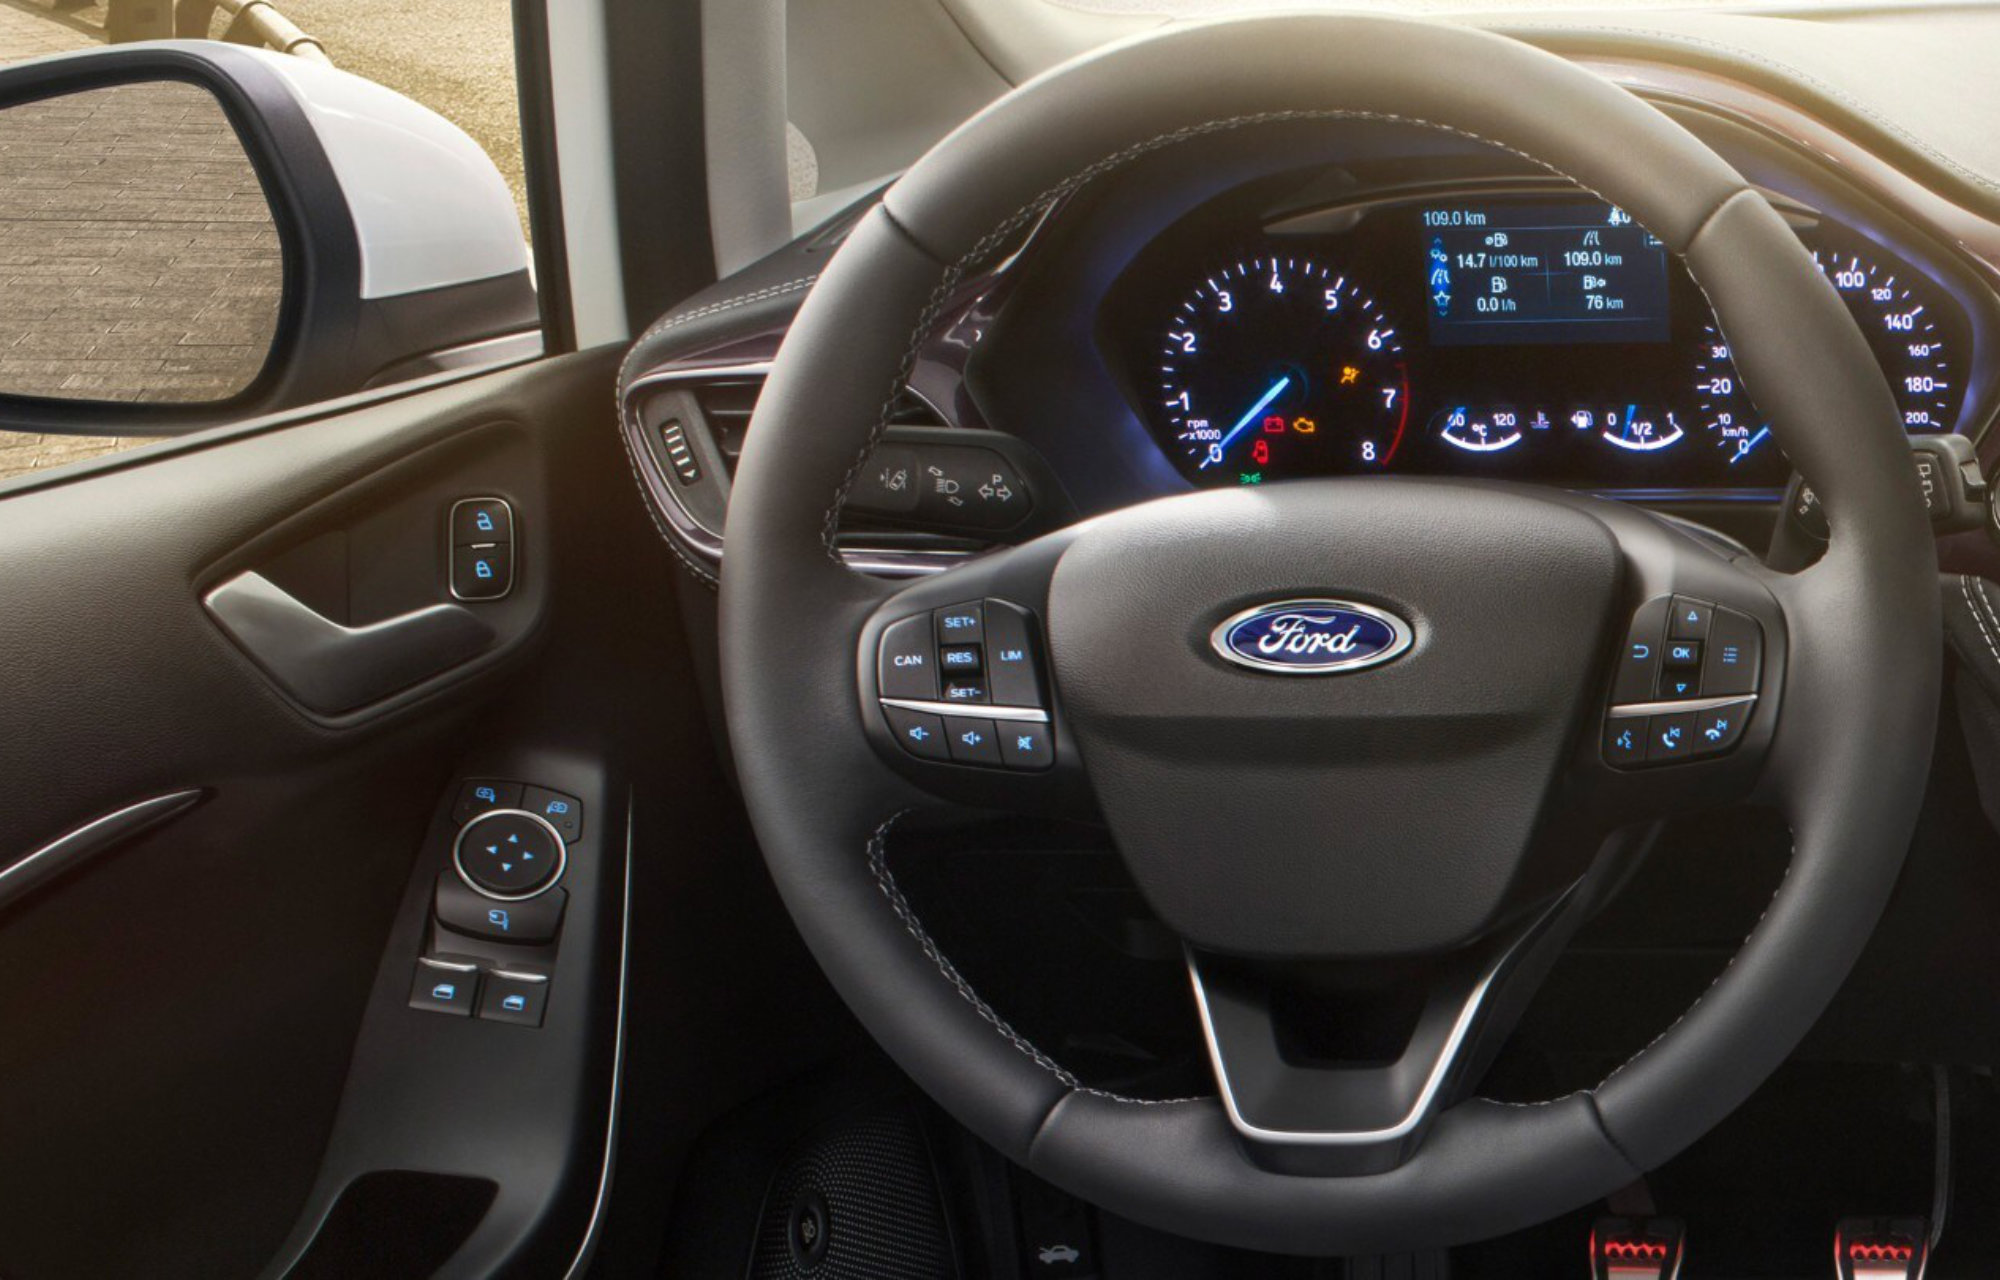 Ford Vignale FordStore Waasland Automotive